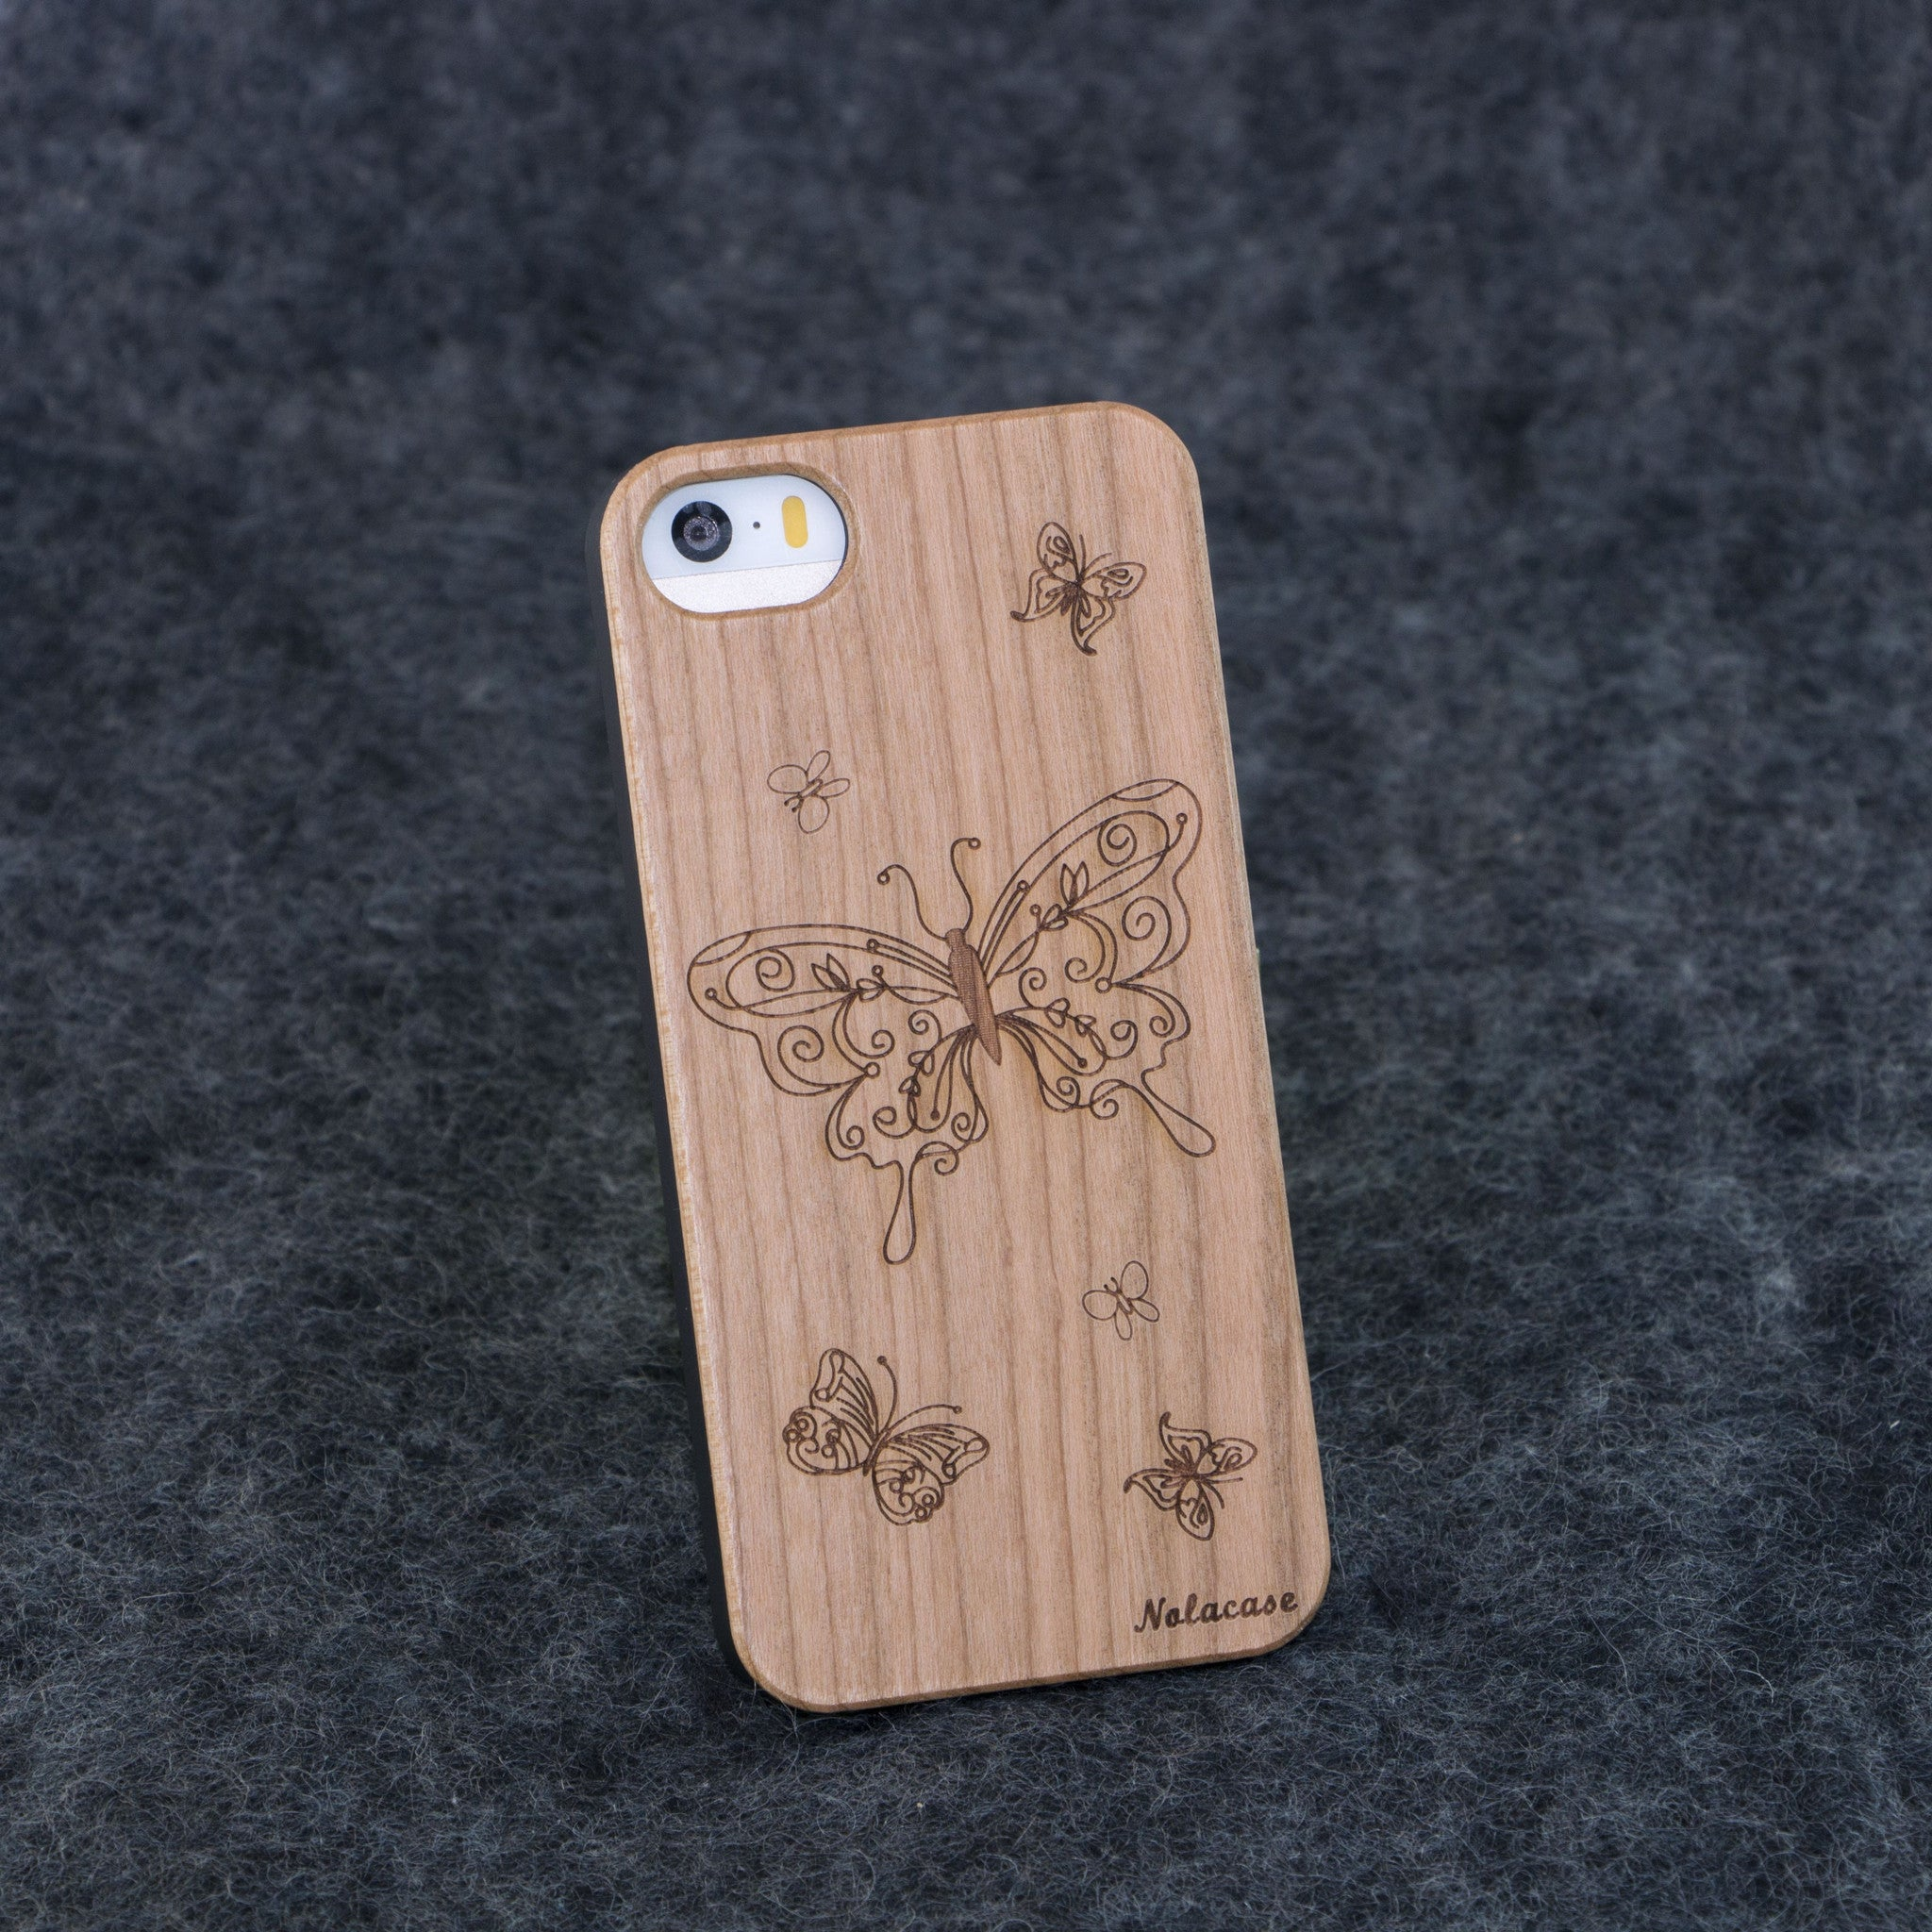 iPhone 5 / 5S Butterflies Slim Wood Case - NOLACASE